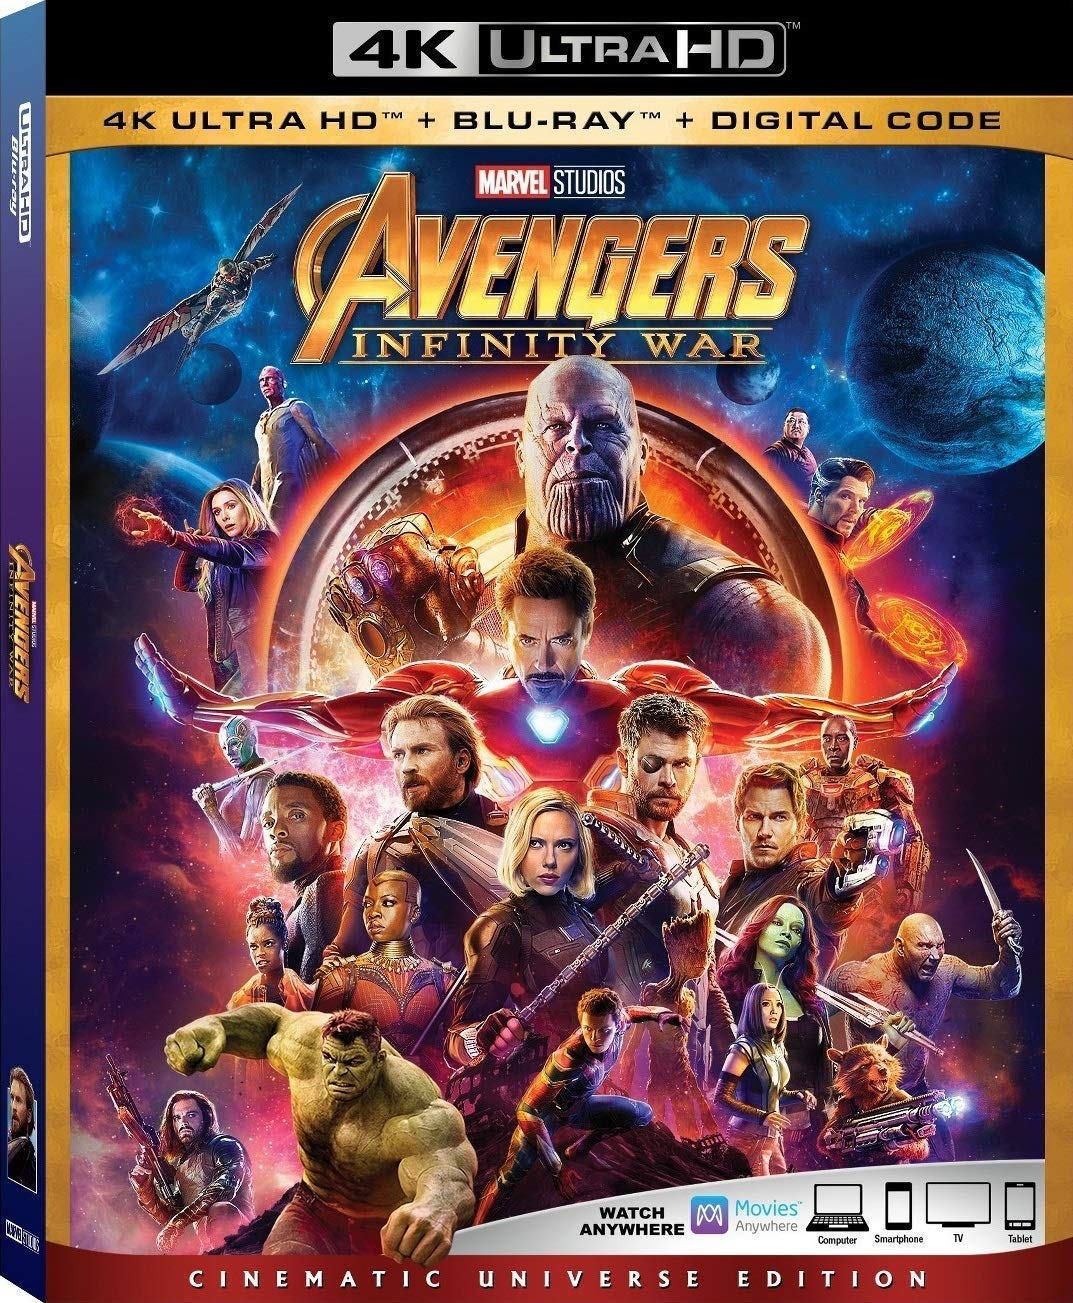 Avengers Infinity War 4K Ultra HD + Blu Ray + Digital Code [Blu-ray] by M-Video